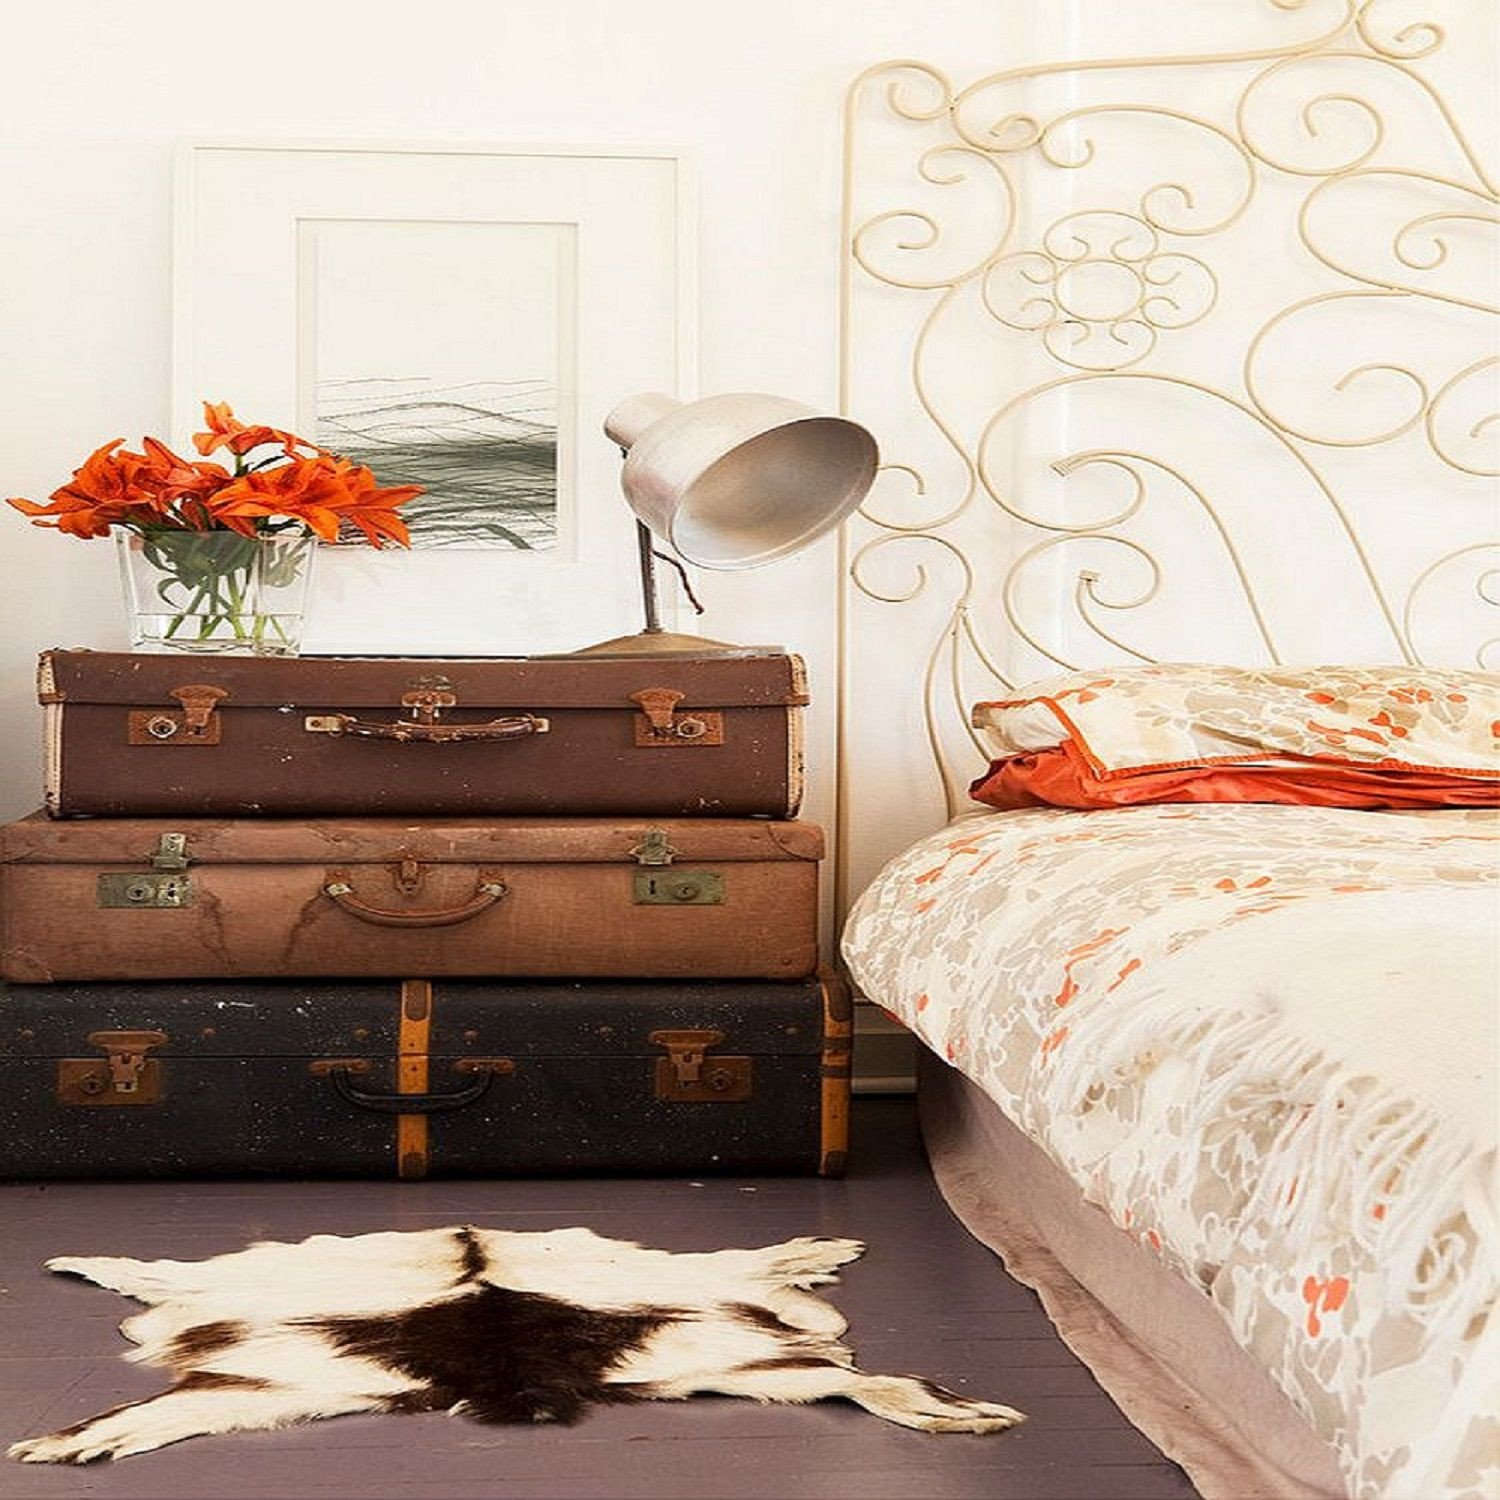 Cheap Bedroom Decor Online Shopping New Tips for Buying Furniture at Thrift Stores